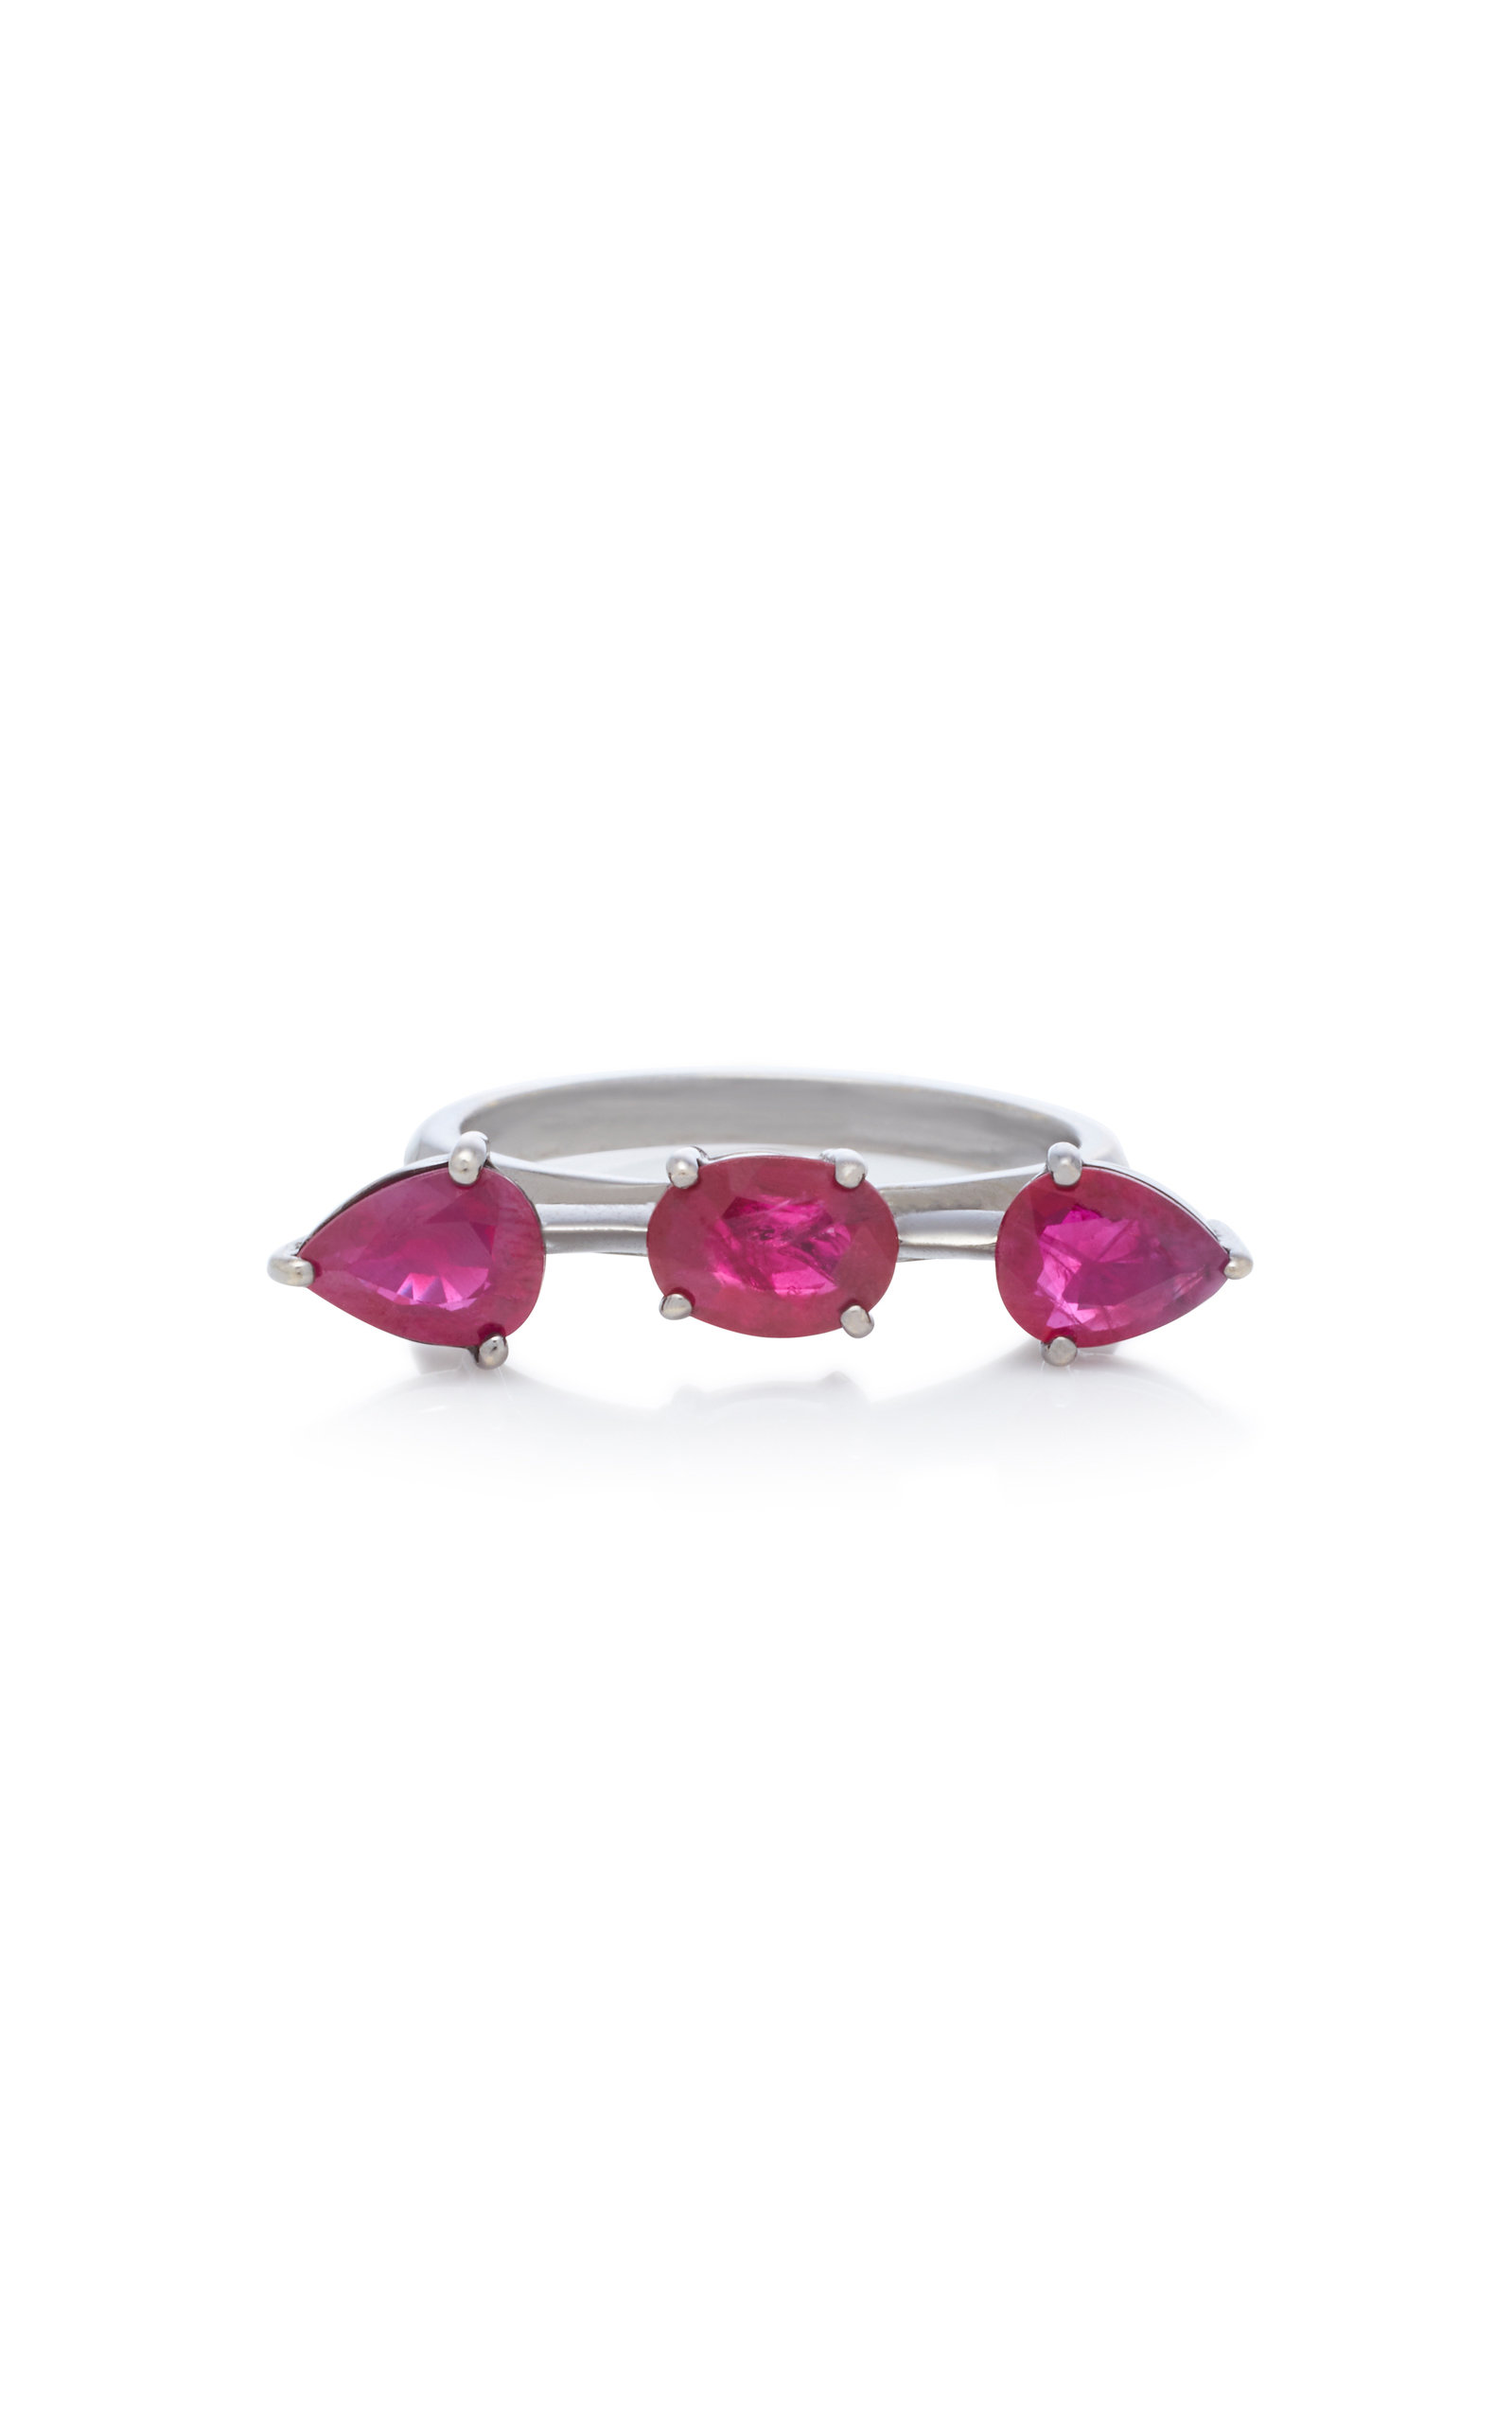 JACK VARTANIAN Rhodium-Plated 18K White Gold Ruby Ring in Red